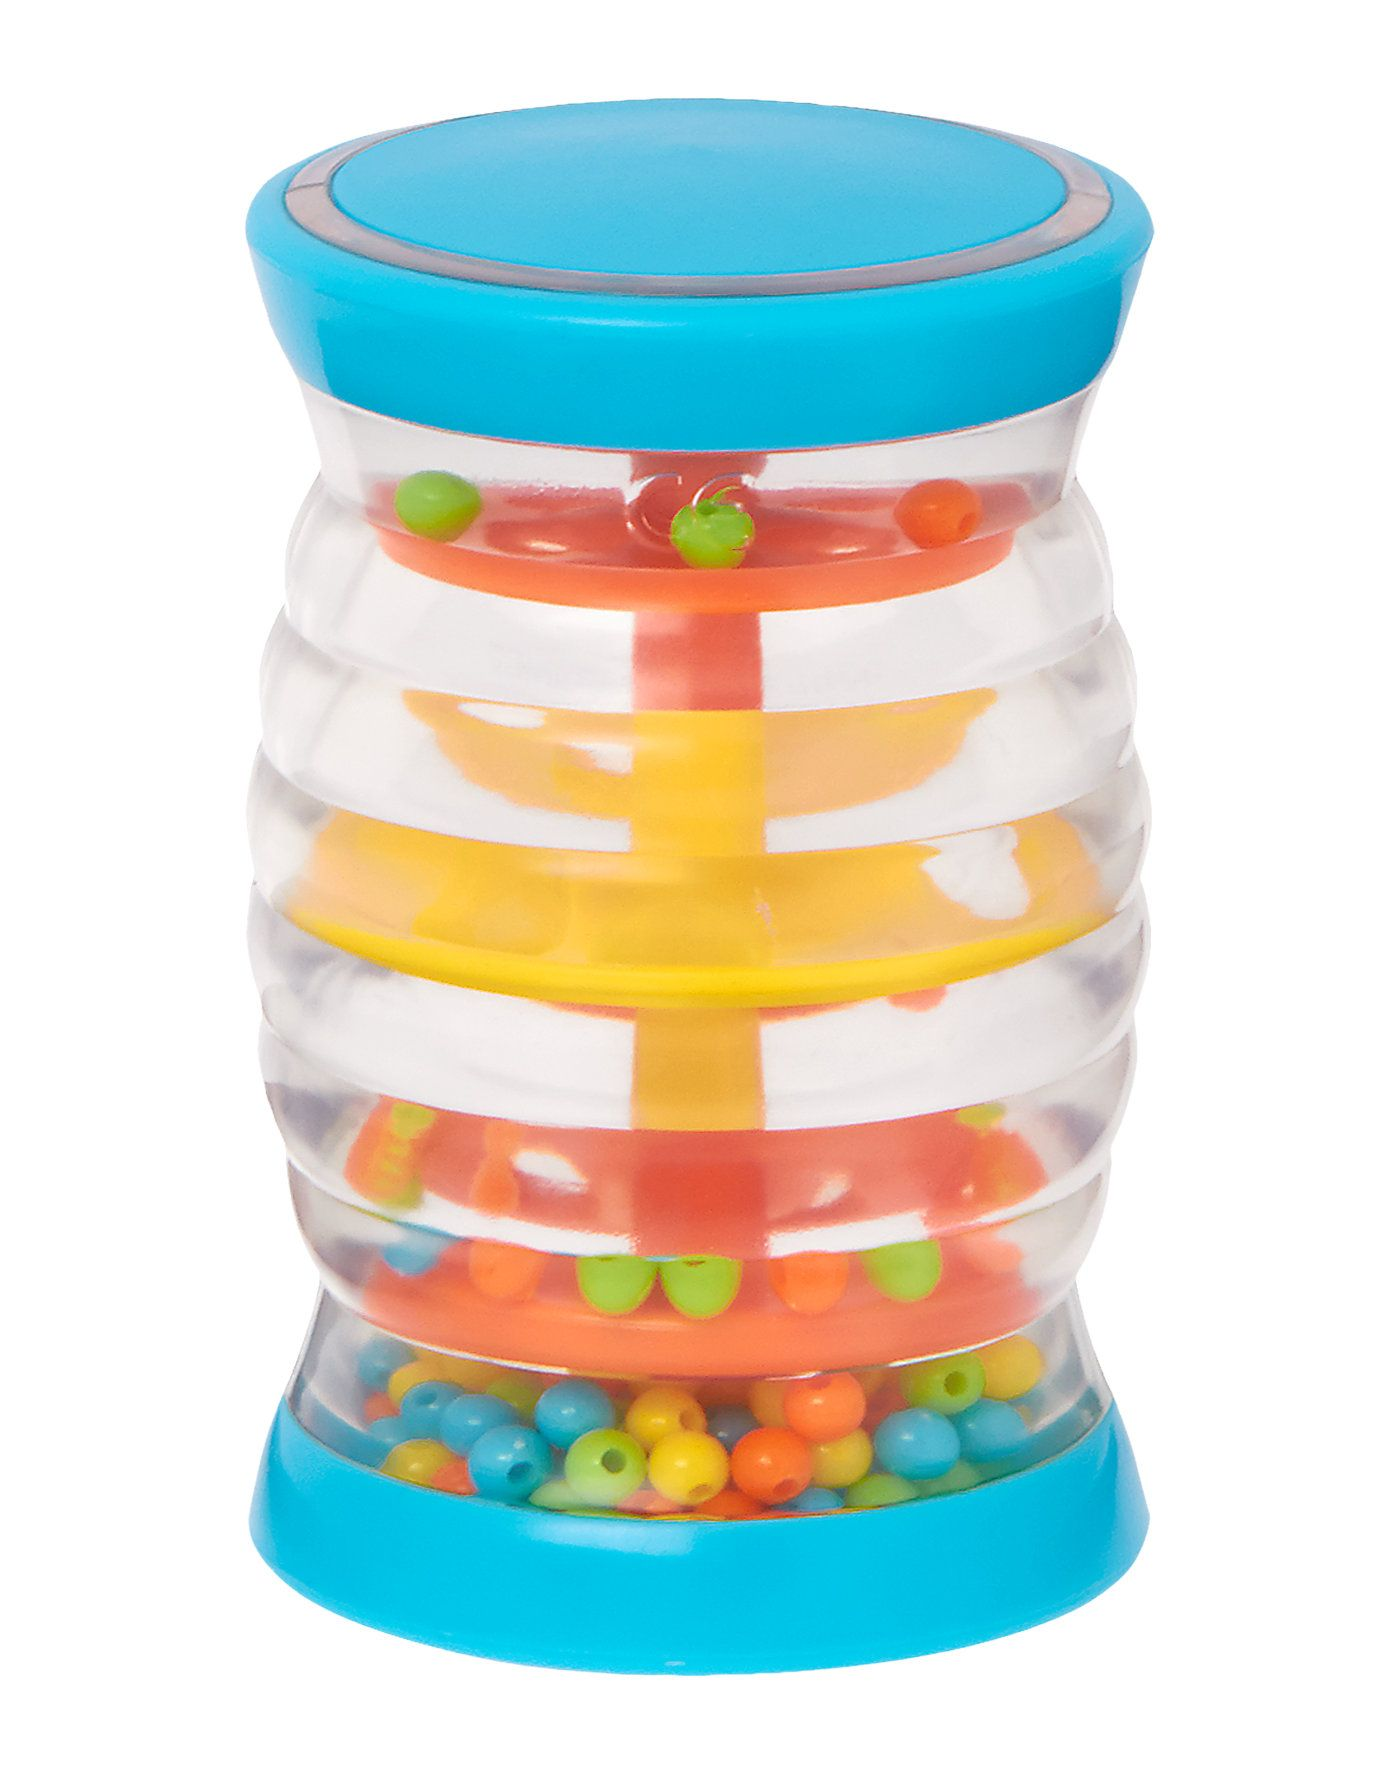 Your child will be mesmerized by the sight and sound of the colorful beads as they cascade down this mini rainstick.  Babies will also enjoy rolling this musical instrument on the ground. $8.00